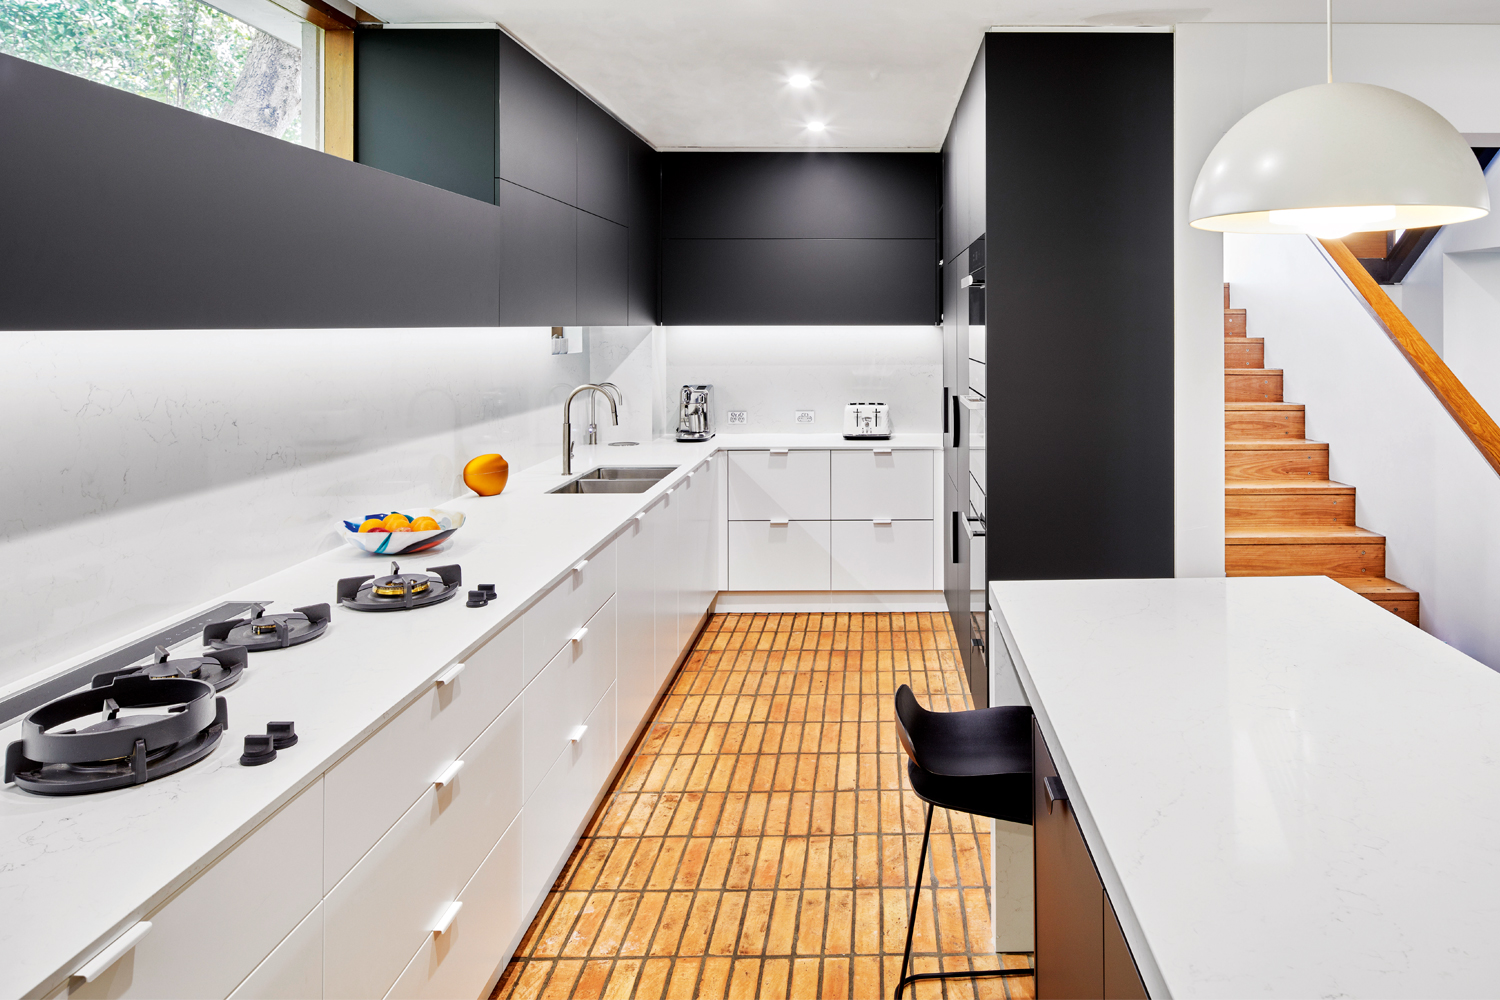 This modern and open kitchen design offers a bold update